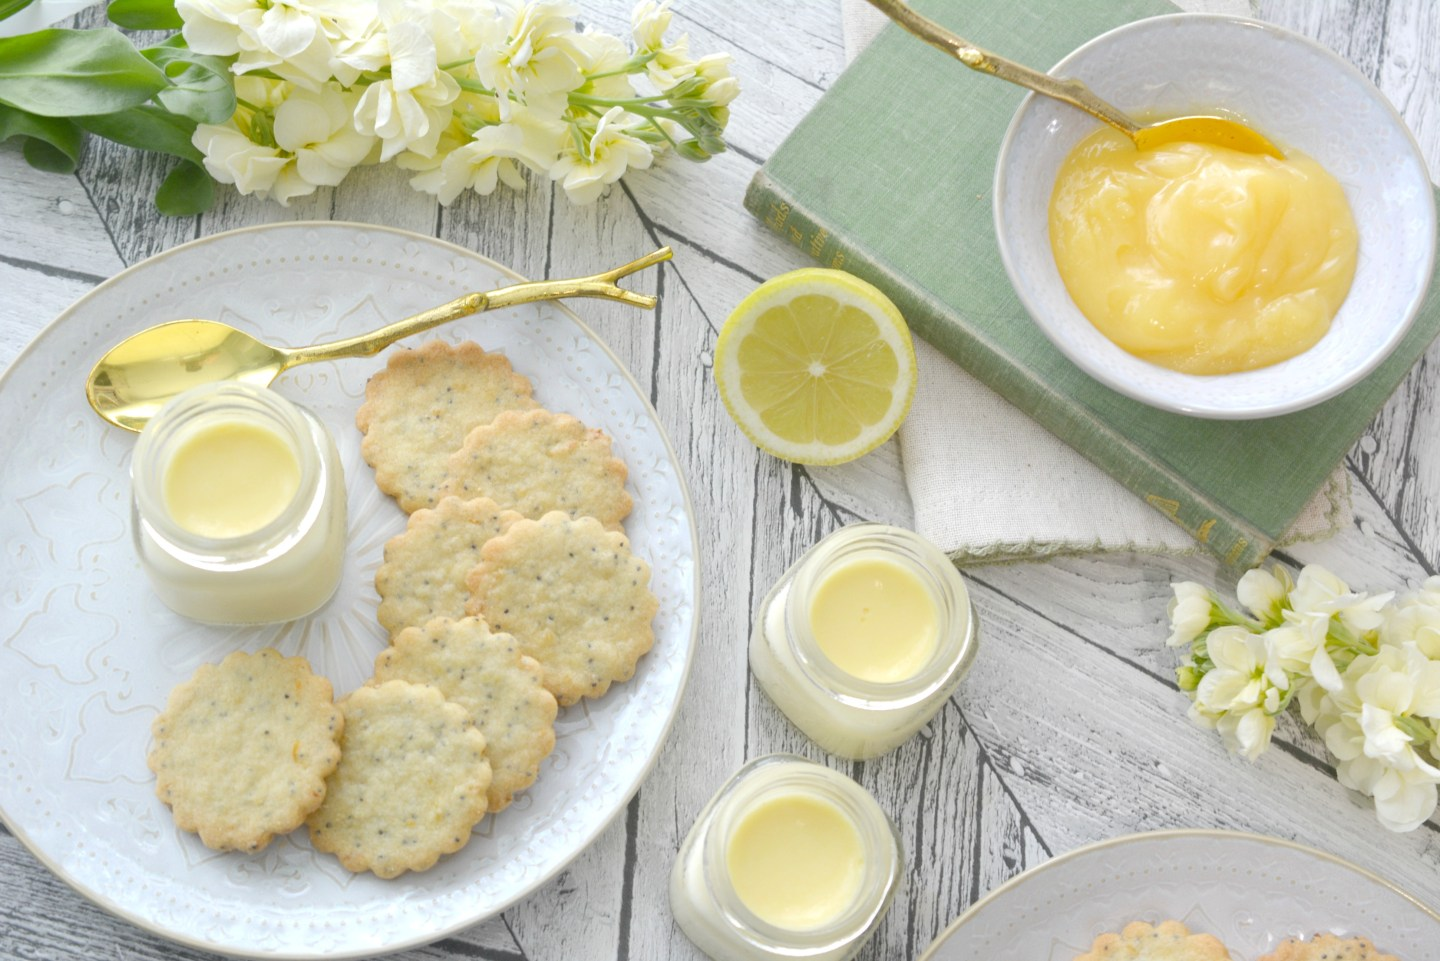 BAKING - Lemon and Poppy Seed Thins with Lemon Posset recipe